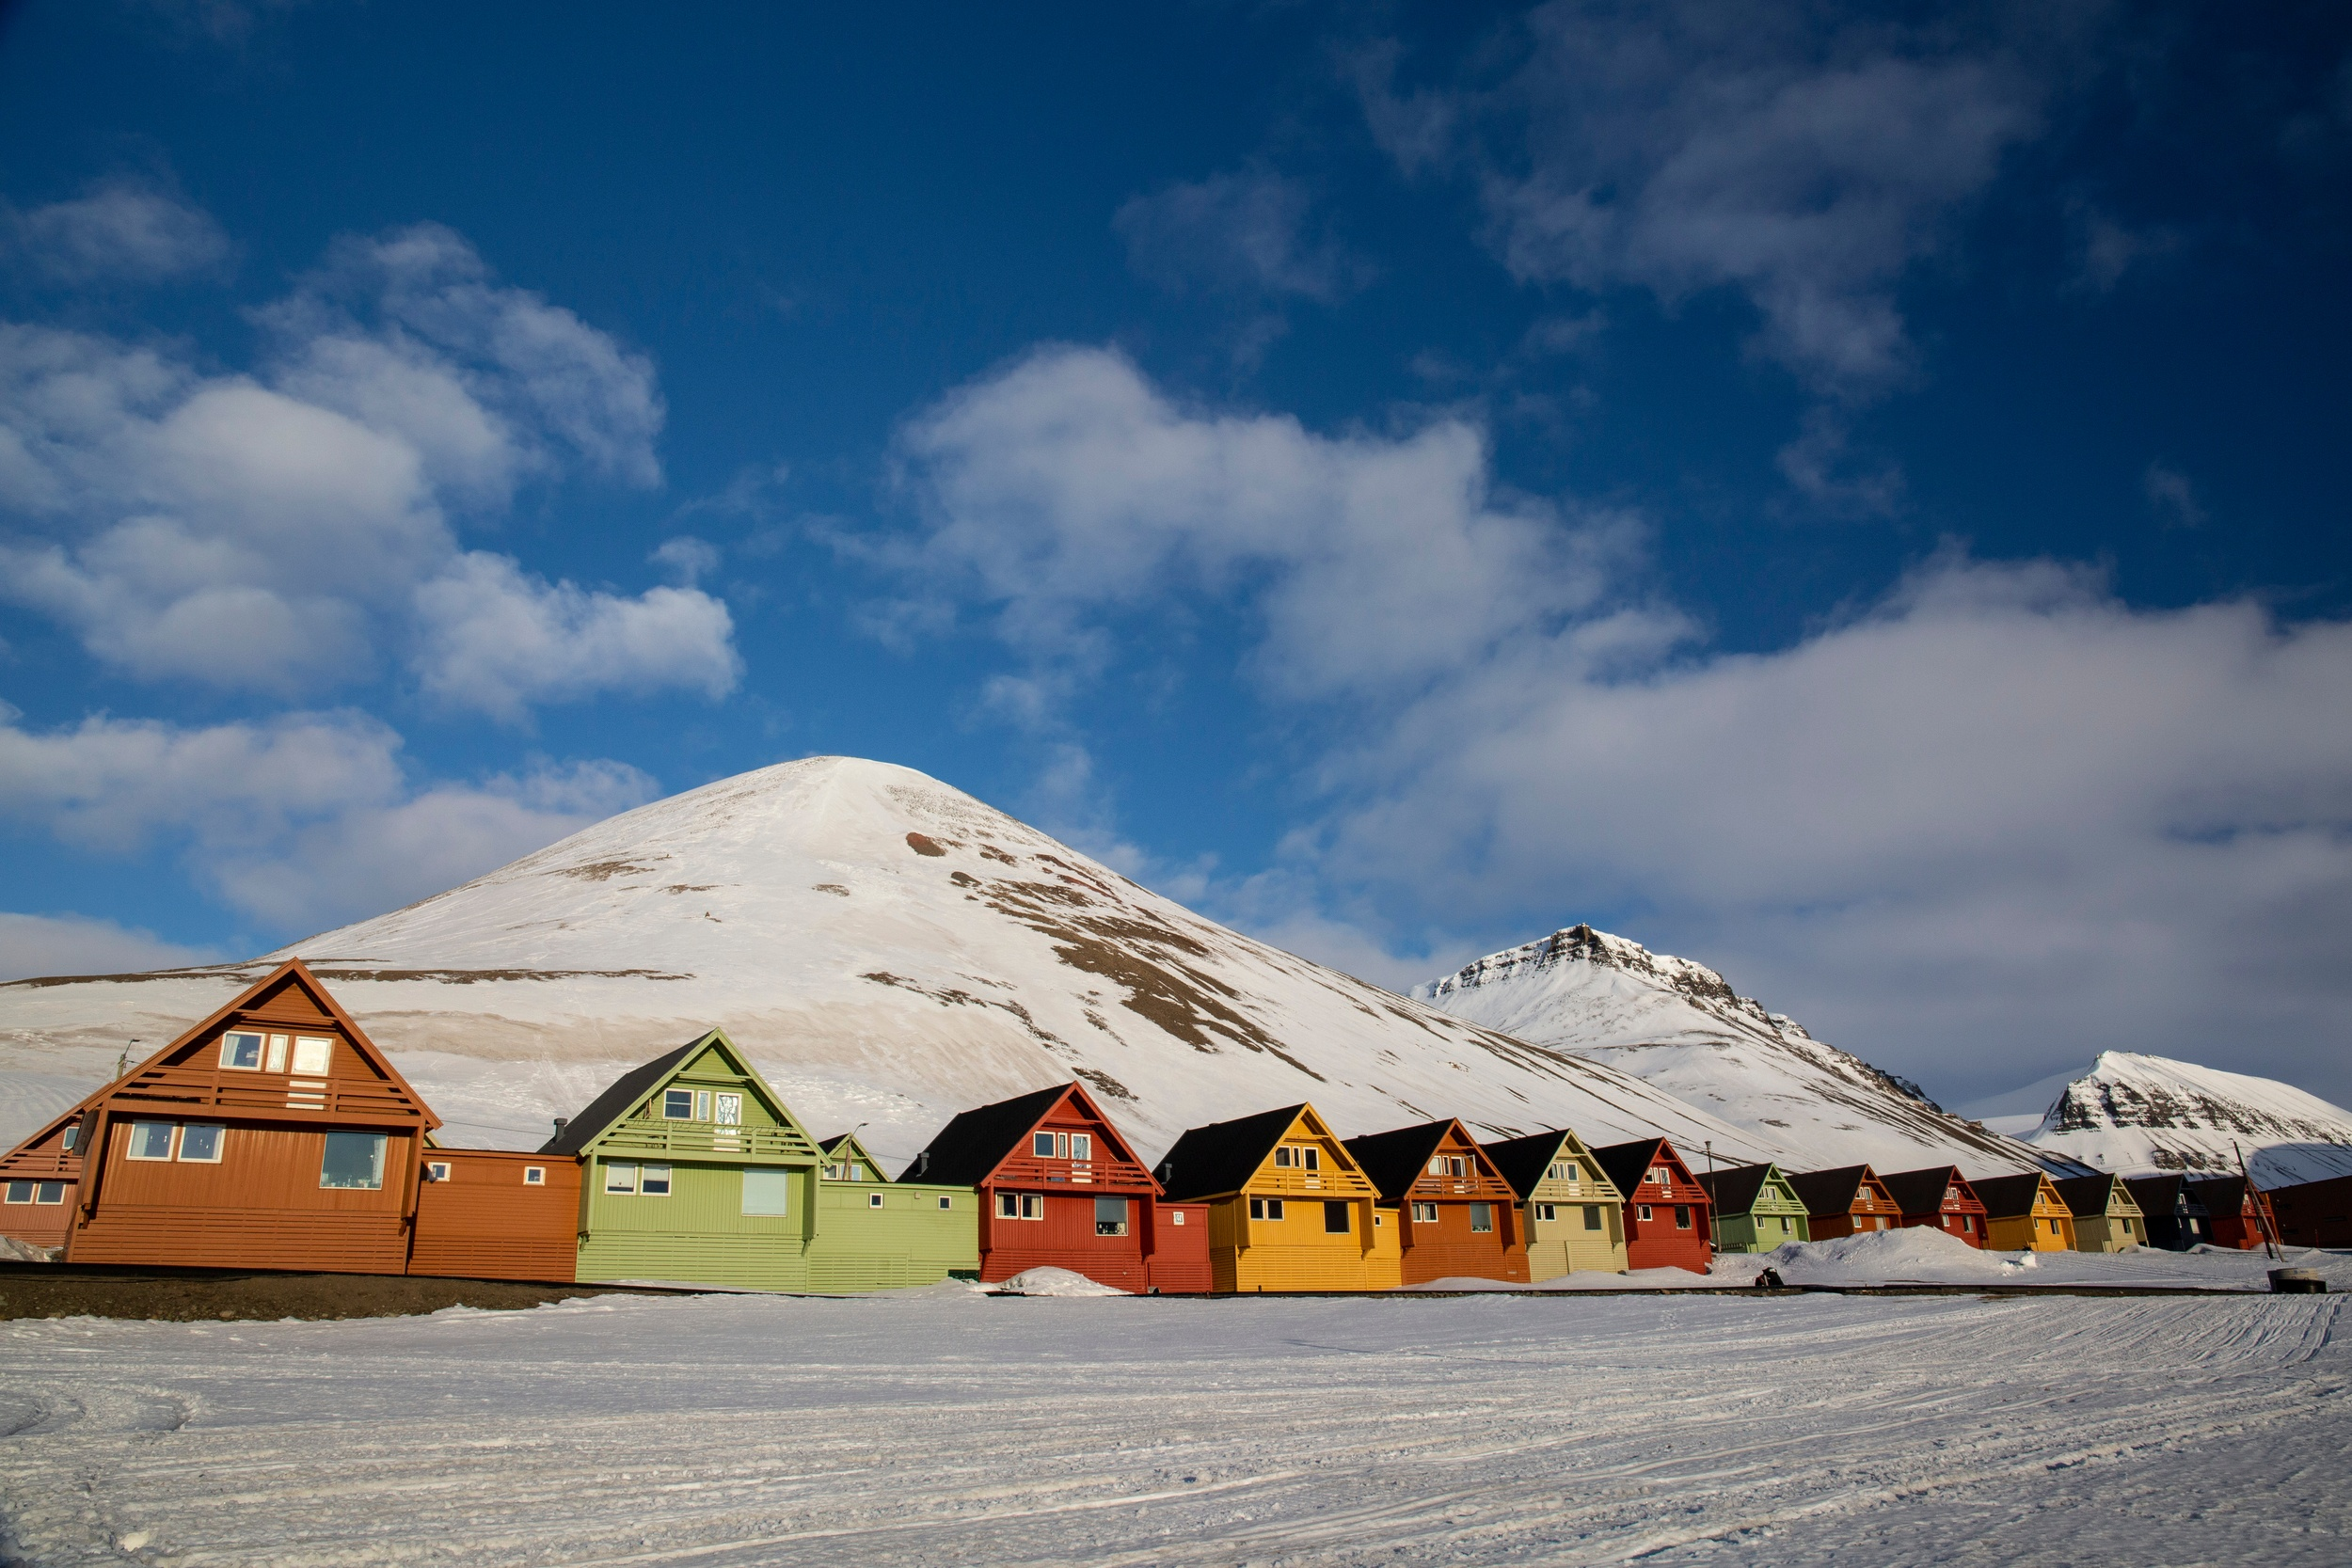 svalbard winter landscape